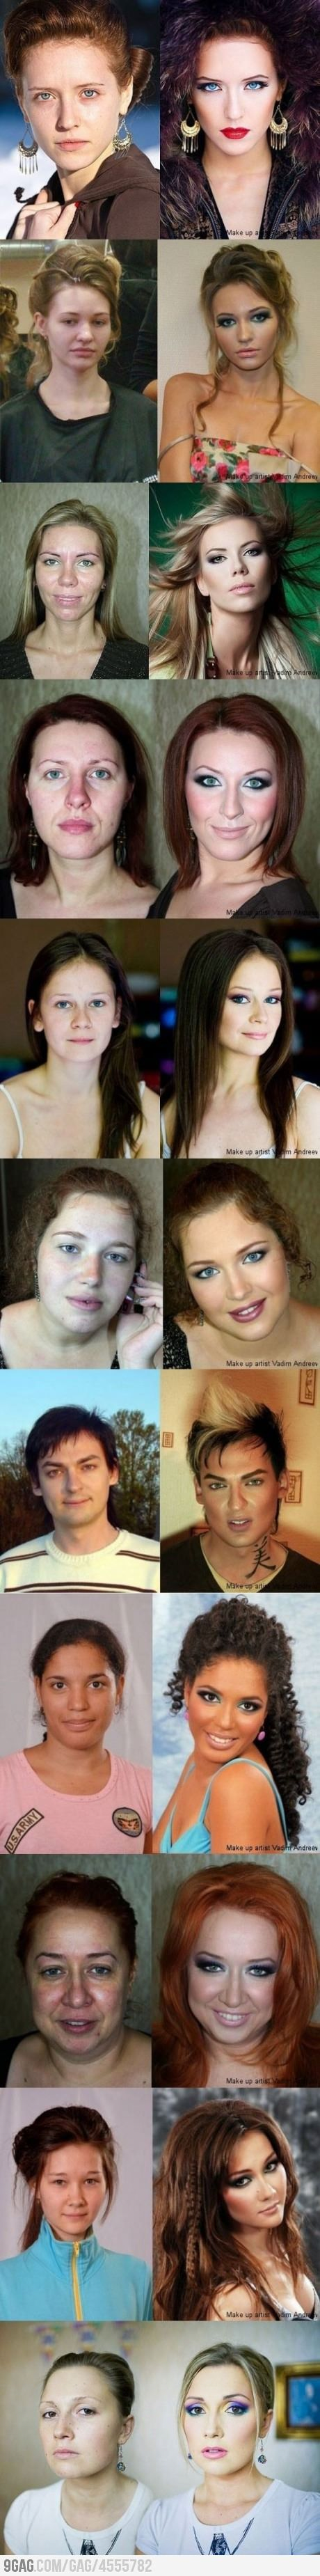 Mother of Make-Up: Skin Care, Funny Pics, Power Of Makeup, True Power, Makeup Artists, Funny Pictures, The Faces, Women Models, Makeup Looks